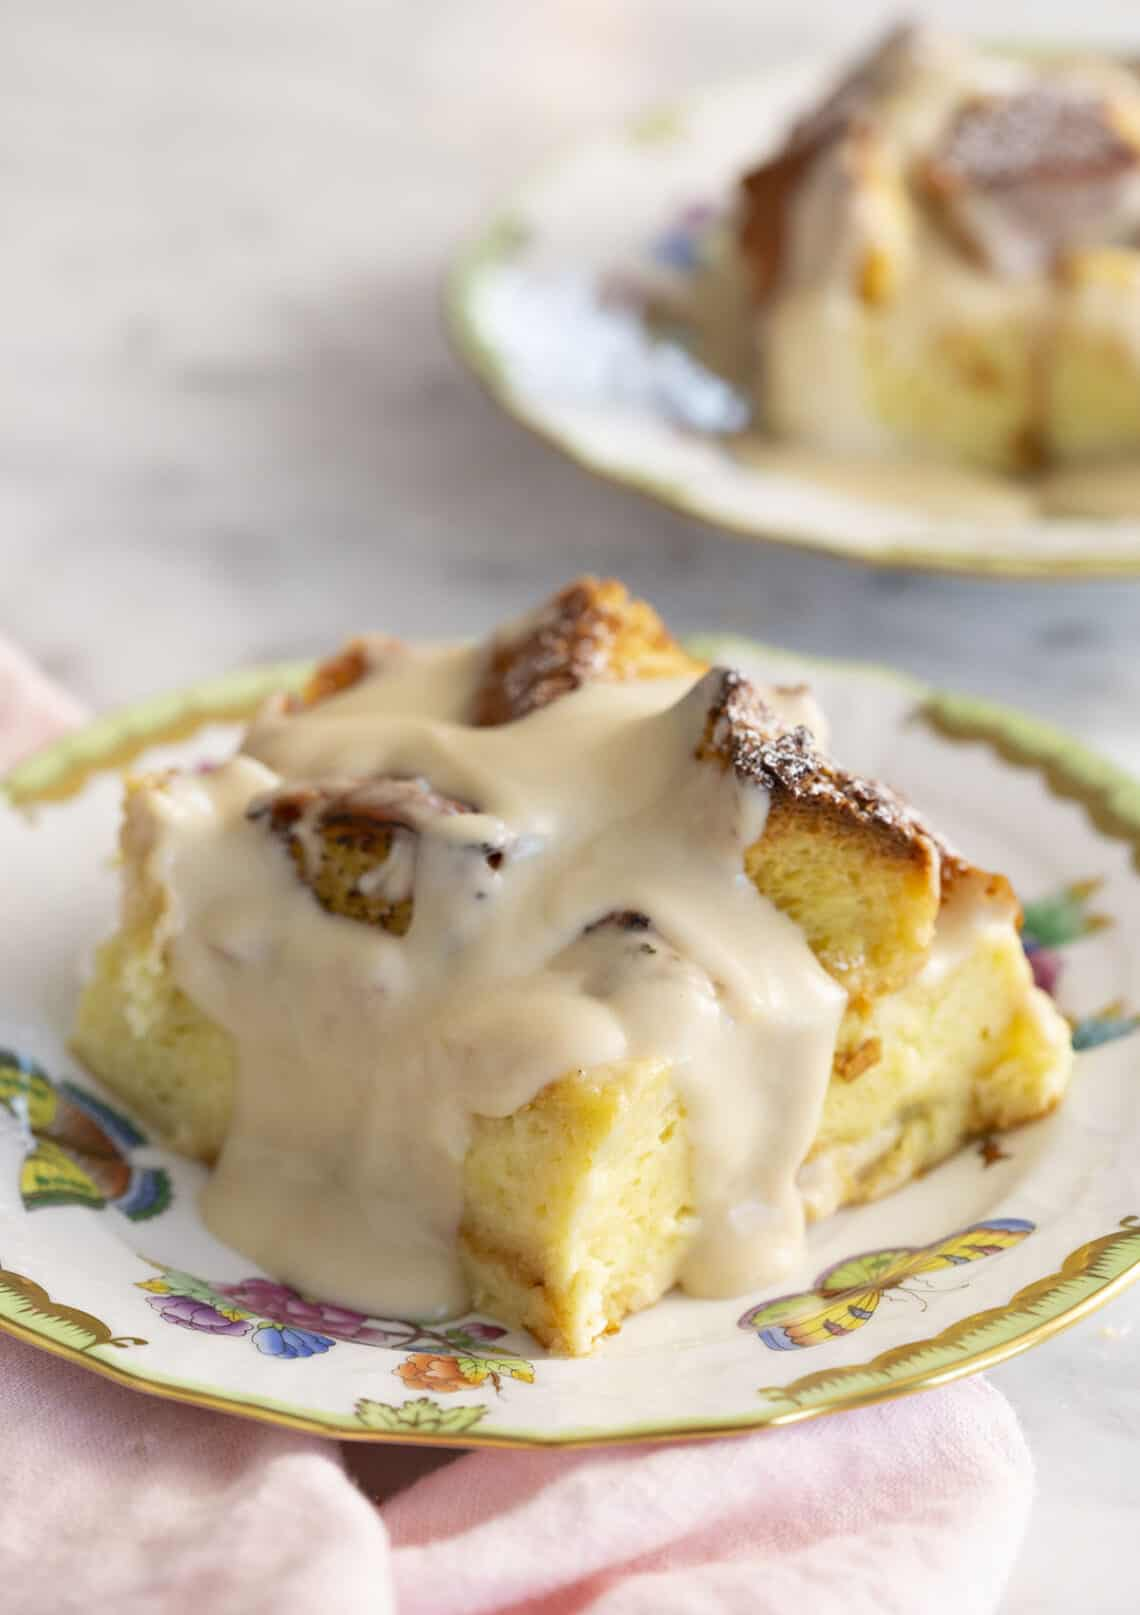 Pieces of bread pudding covered in a rum sauce.